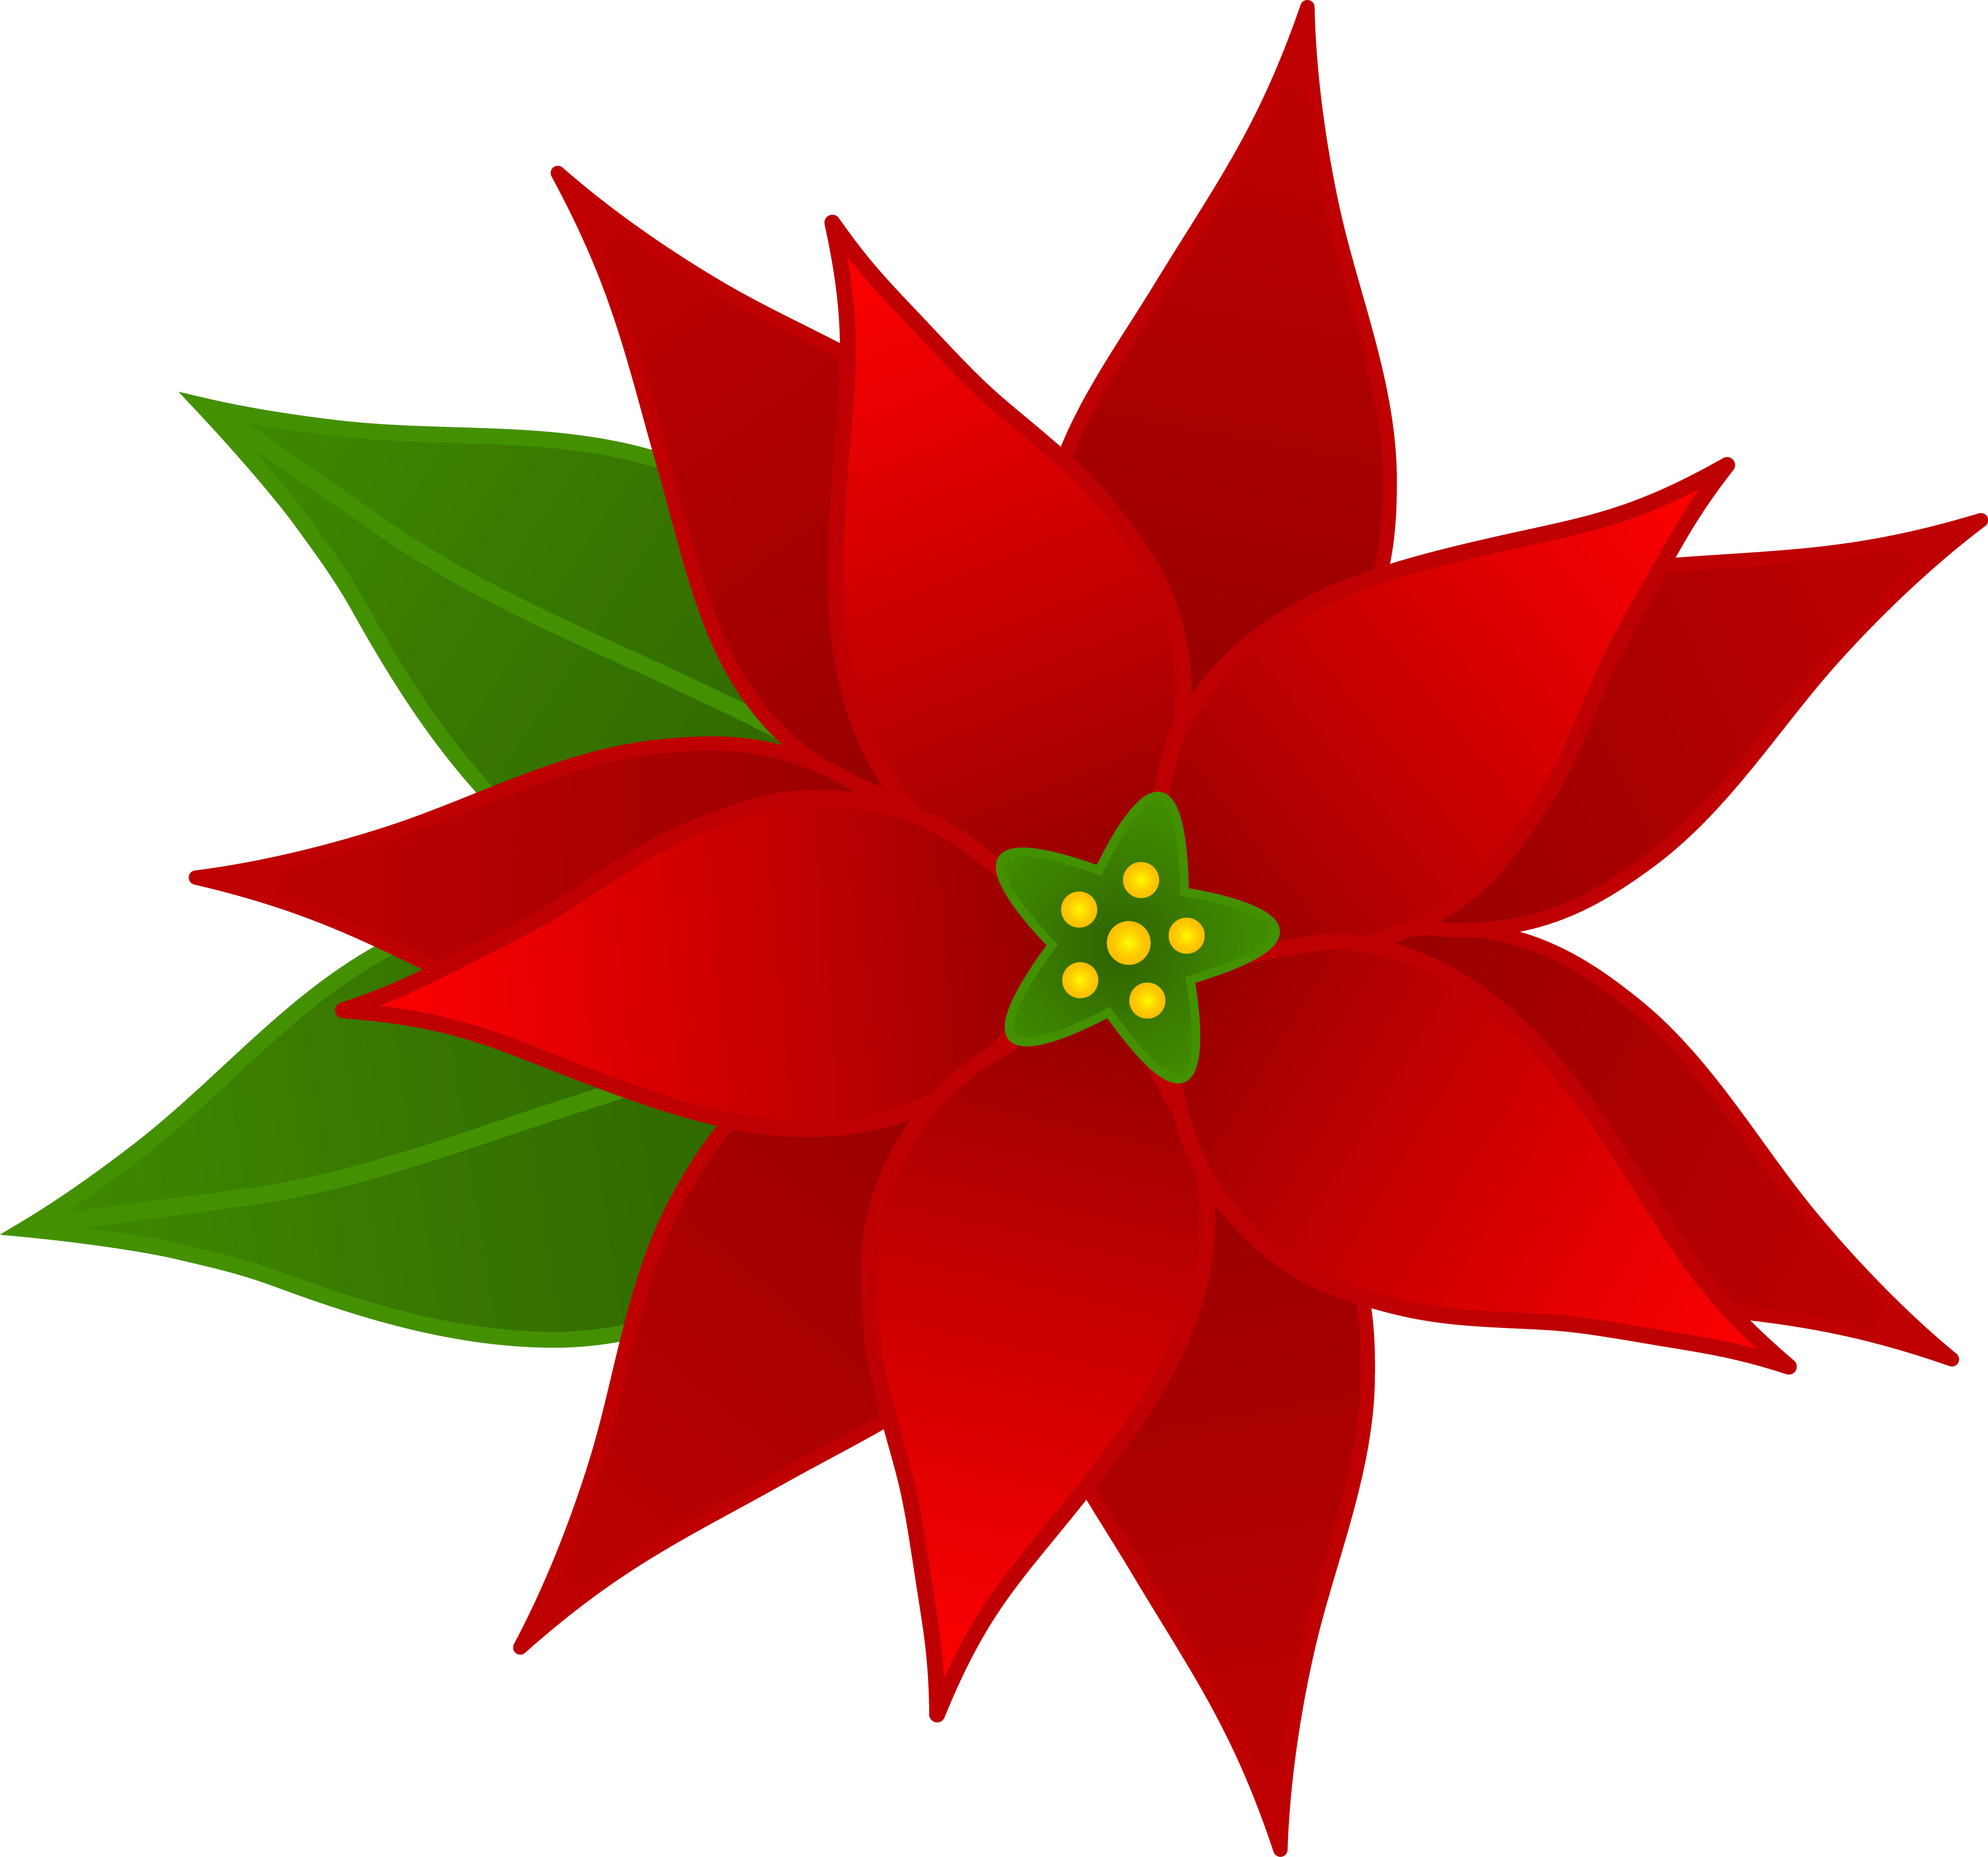 Poinsettia clipart #3, Download drawings